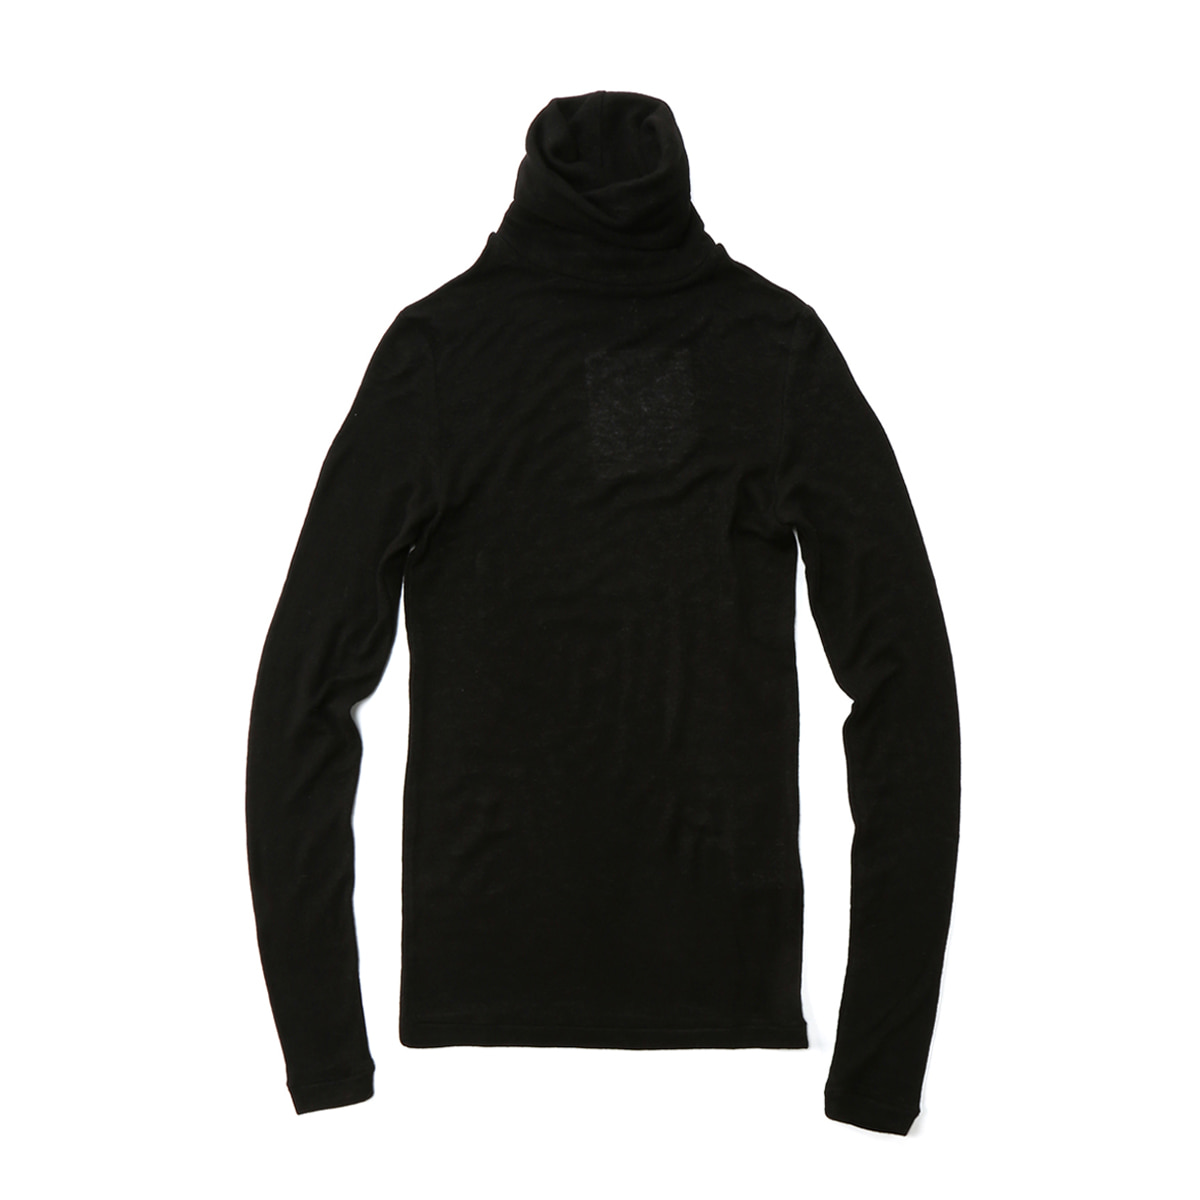 [MUSED] SUBTLE ROLL NECK JERSEY 'BLACK'